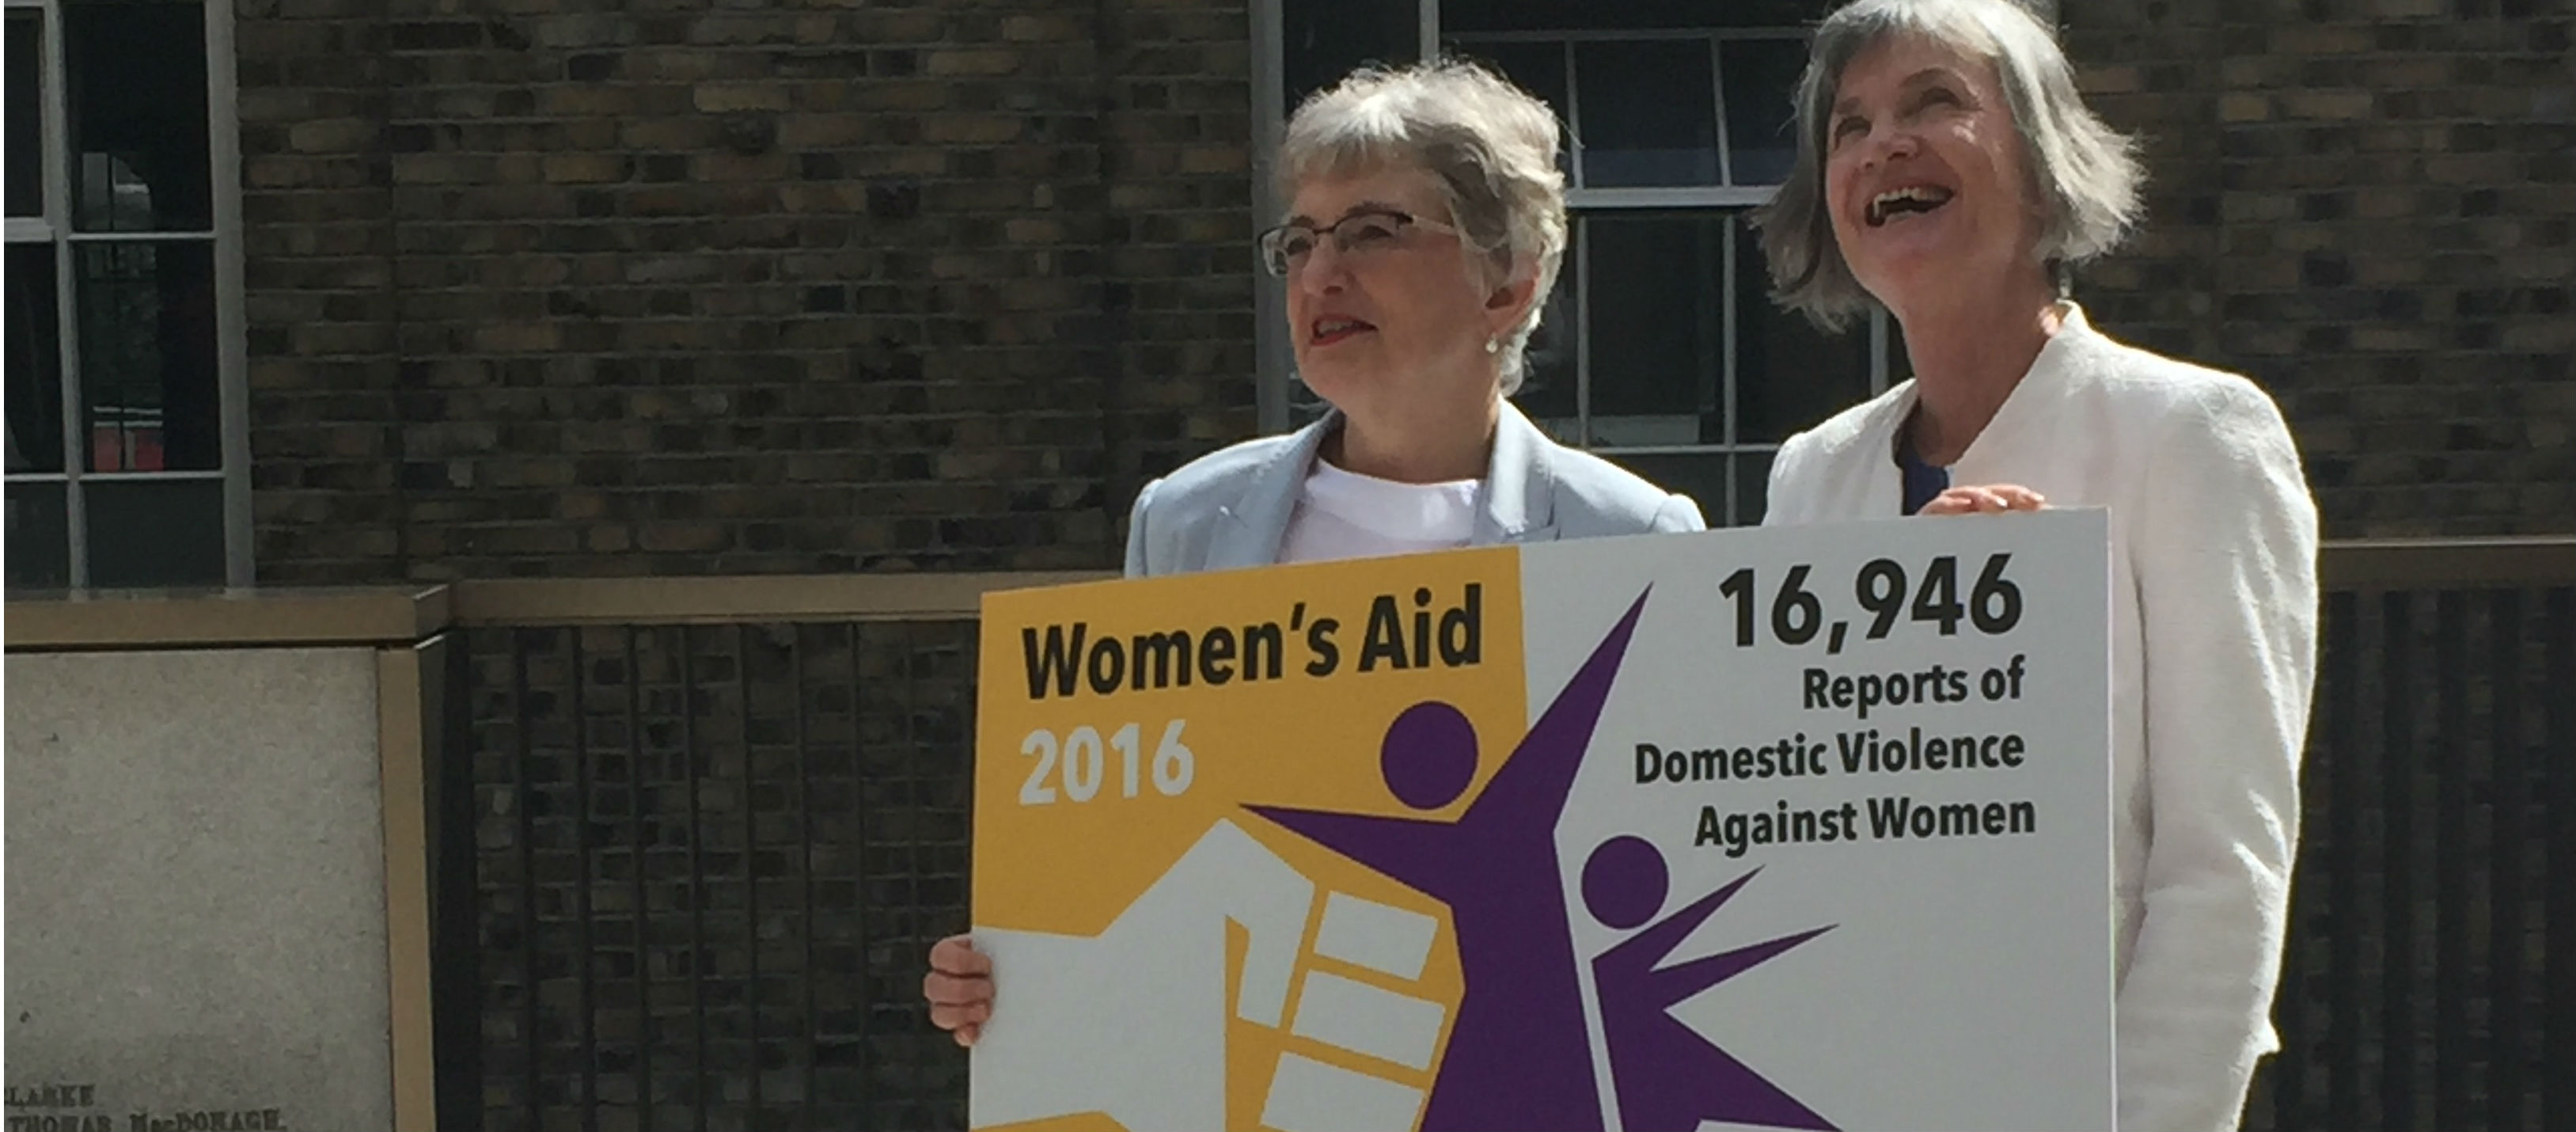 Calls To Women's Aid Spiral